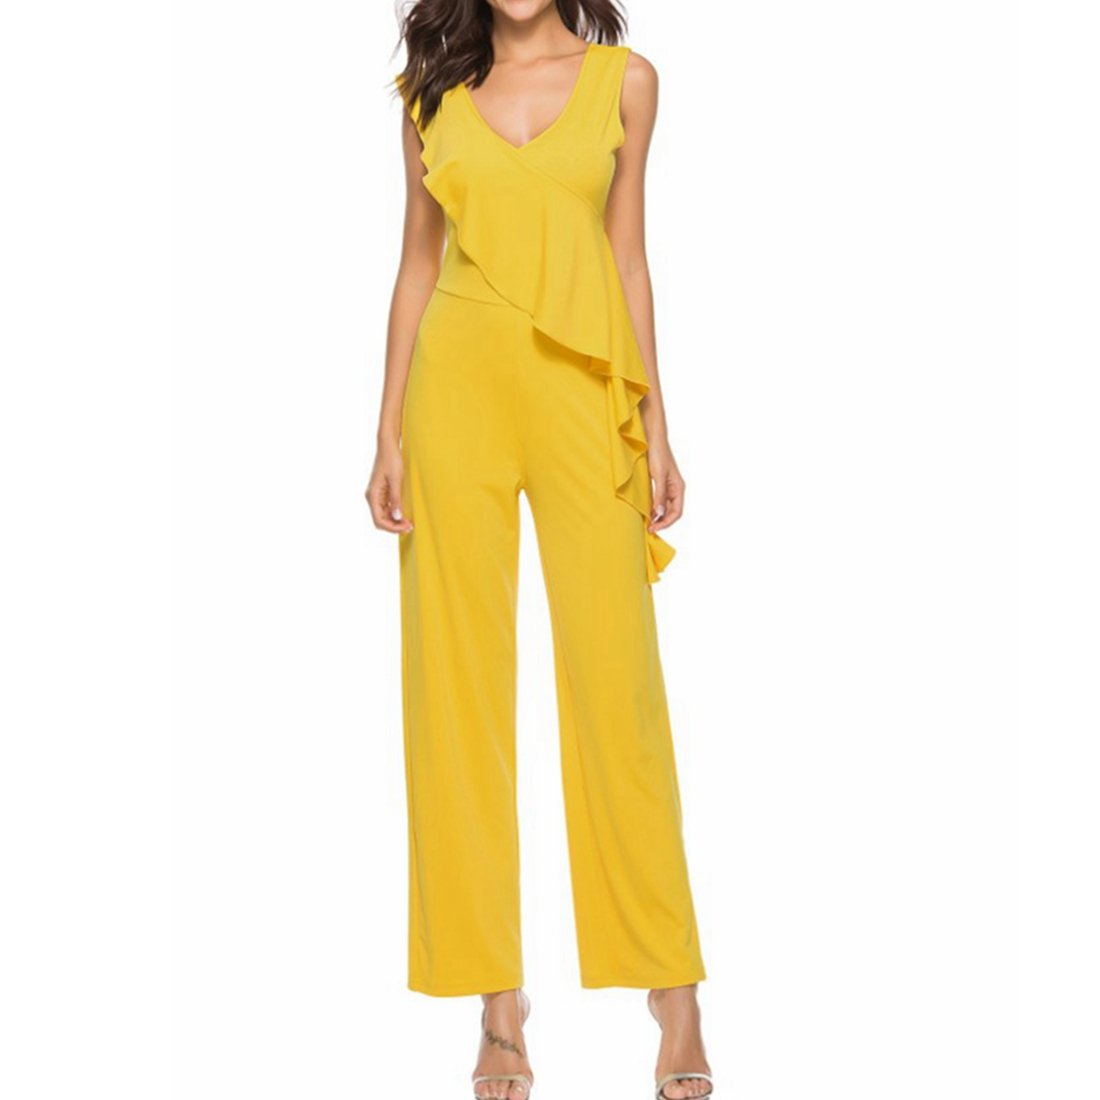 QWKUN Women Ruffle Sleeveless V-Neck Top Casual Wide Leg Jumpsuits Rompers (Color : Yellow, Size : L)